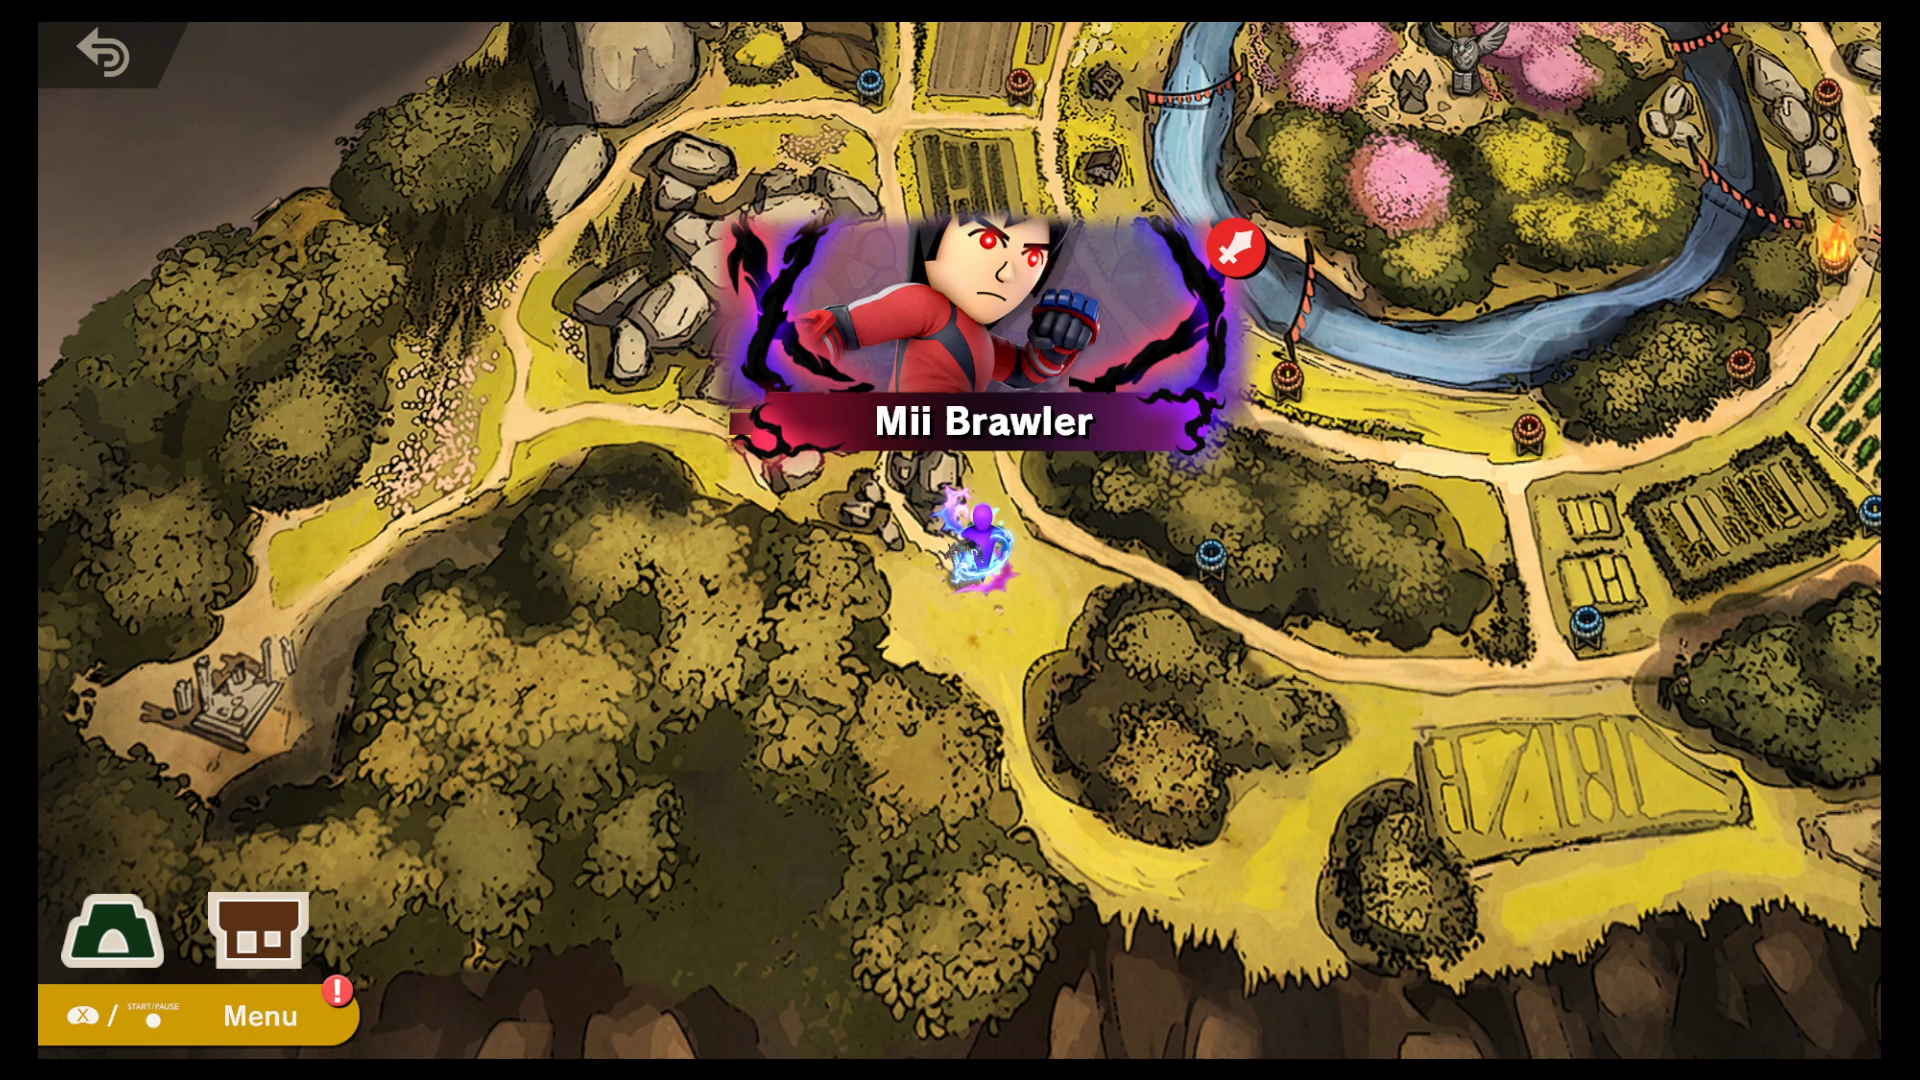 How To Get The Mii Brawler Secret Character In The Sacred Land Of